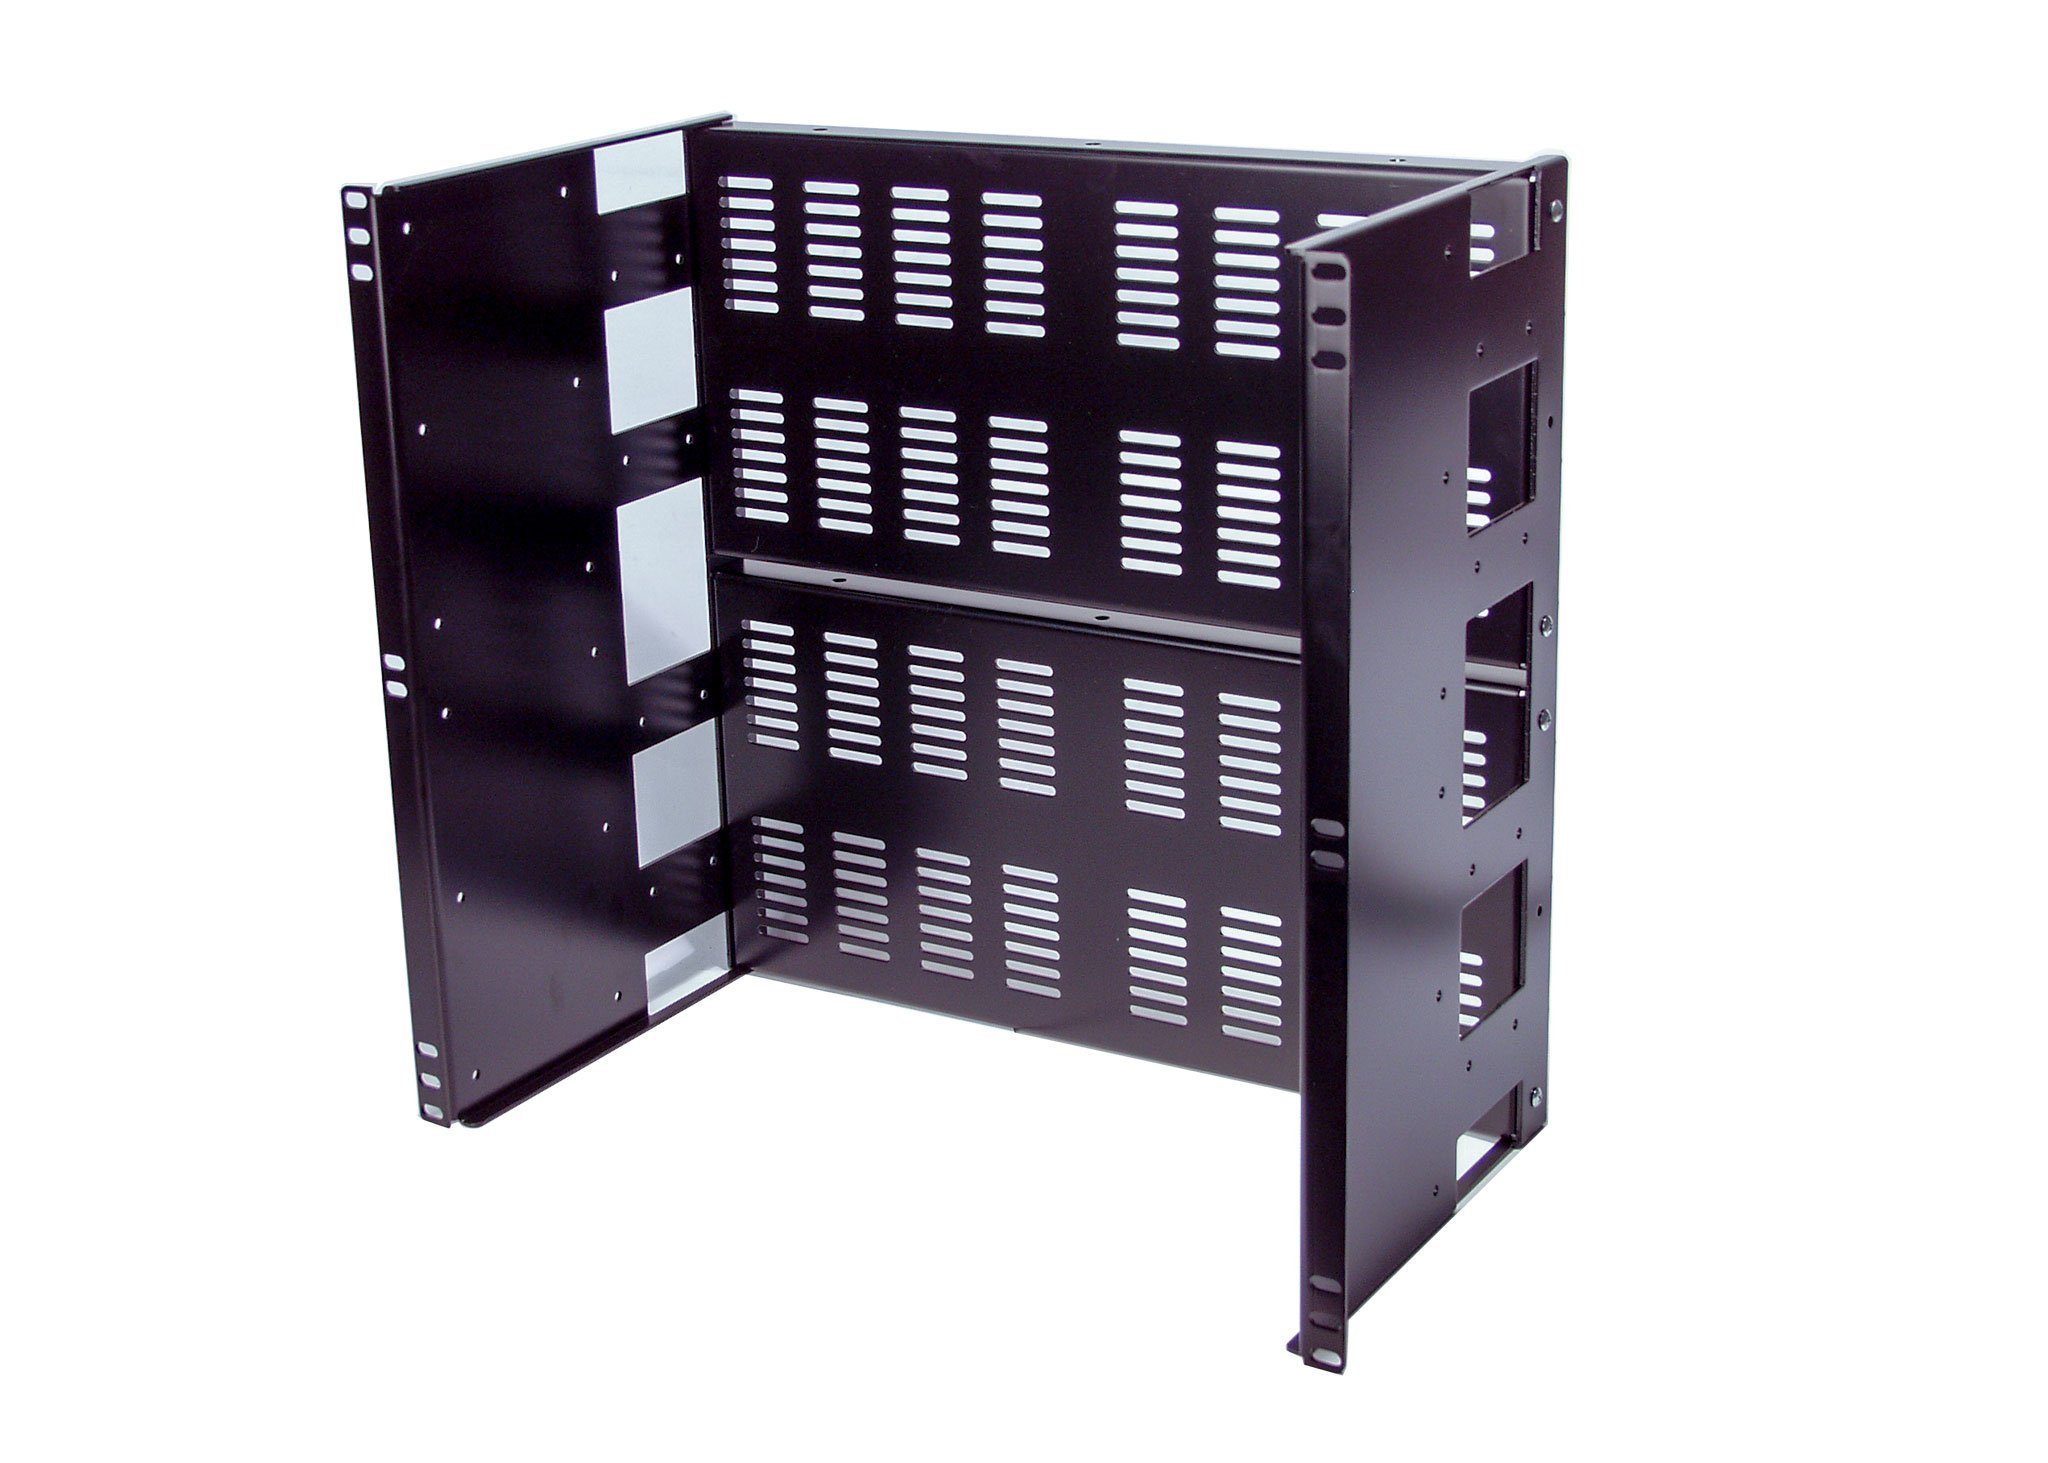 10U Rackmount Vented Adjustable Recessed Panel for general purpose application in a standard 19'' 2-post or 4-post server rack (Vented)